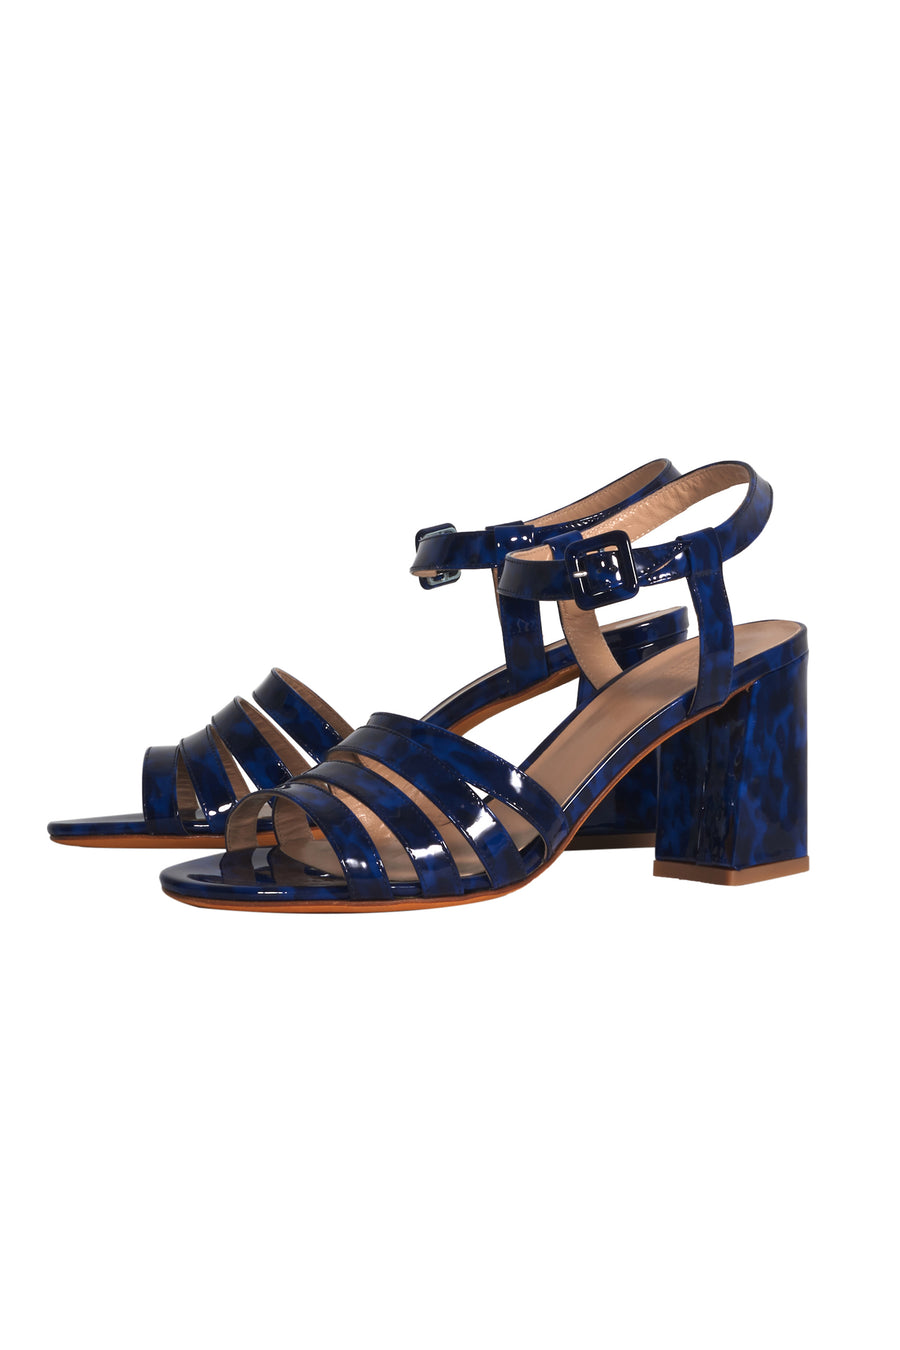 Palma High Sandal in Navy Tortoise Patent